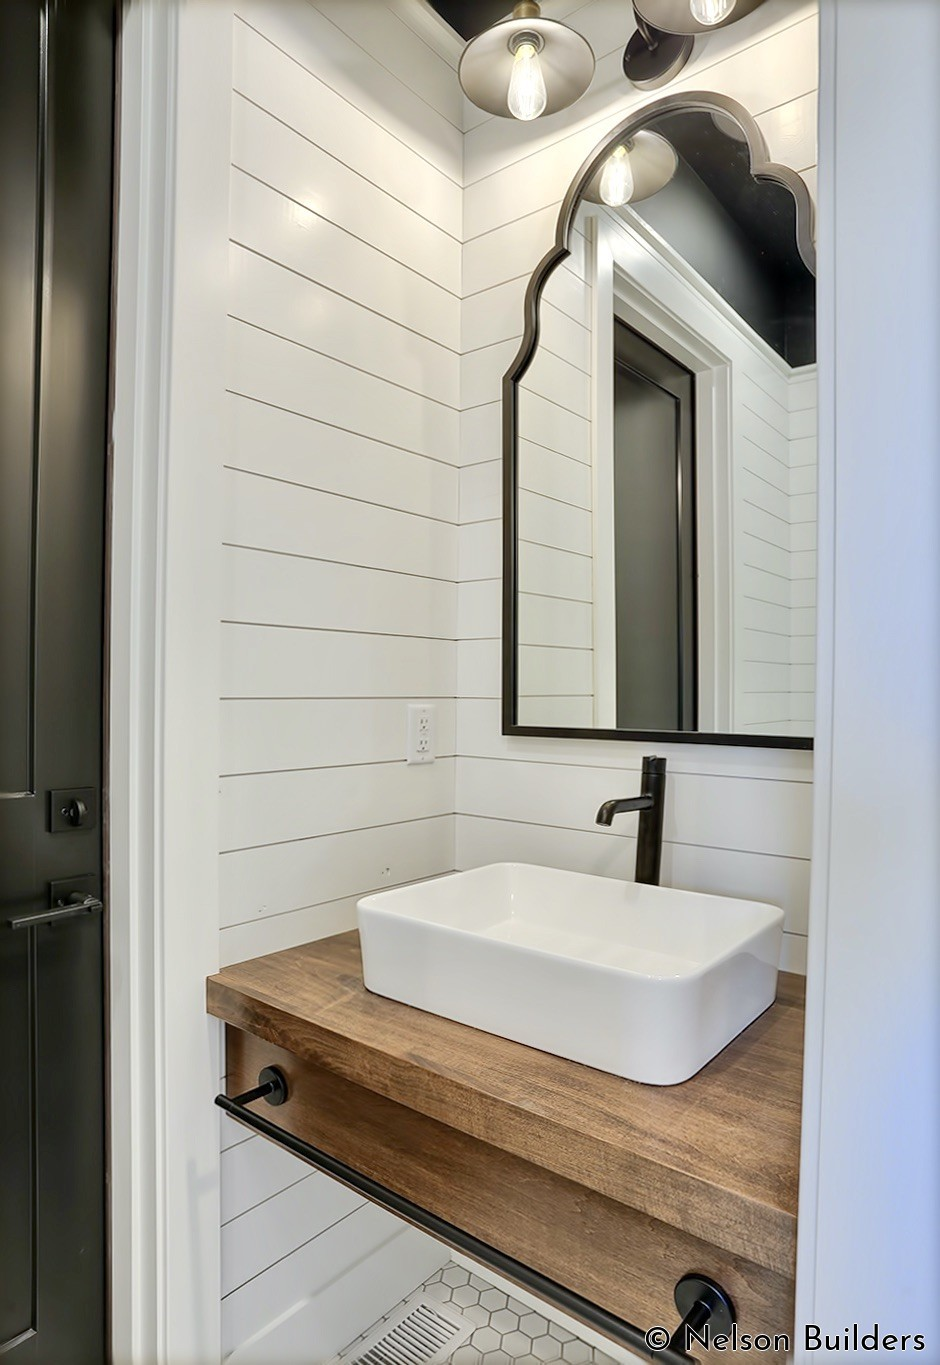 The powder room doubles as a pool bathroom for outside access and is lined with shiplap nearly to the ceiling.